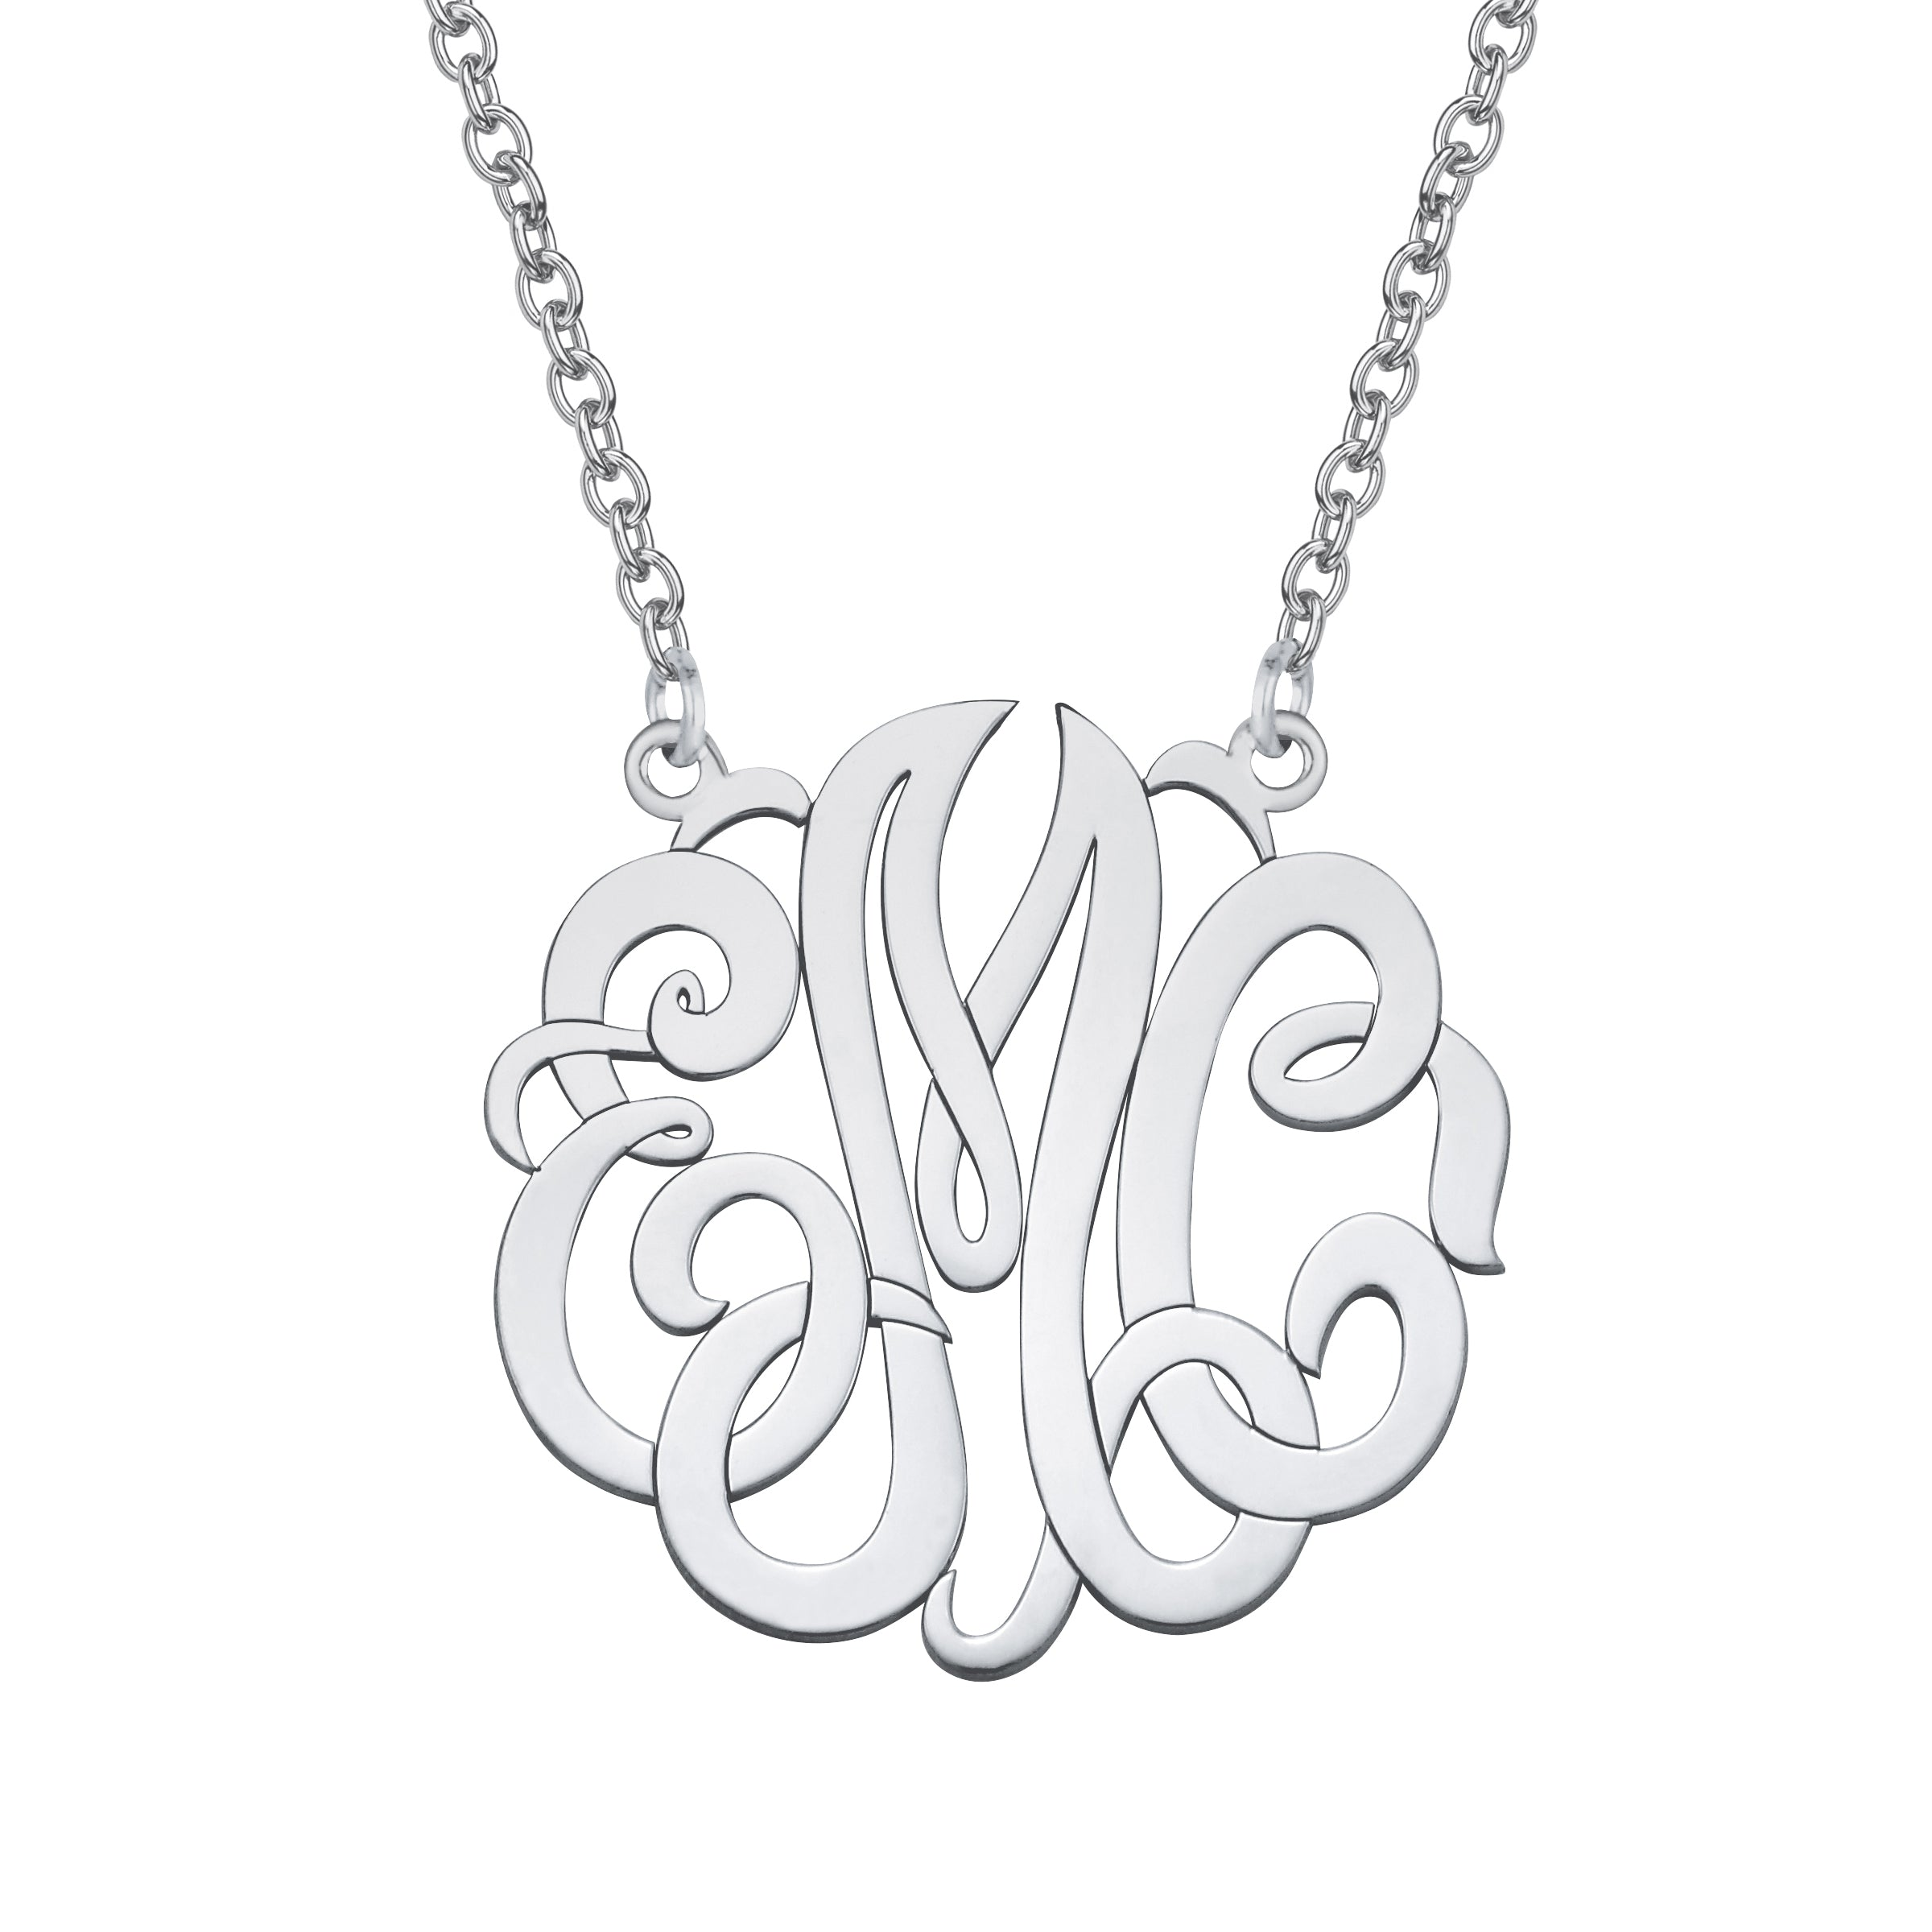 Monogram Pendant, Large, Sterling Silver